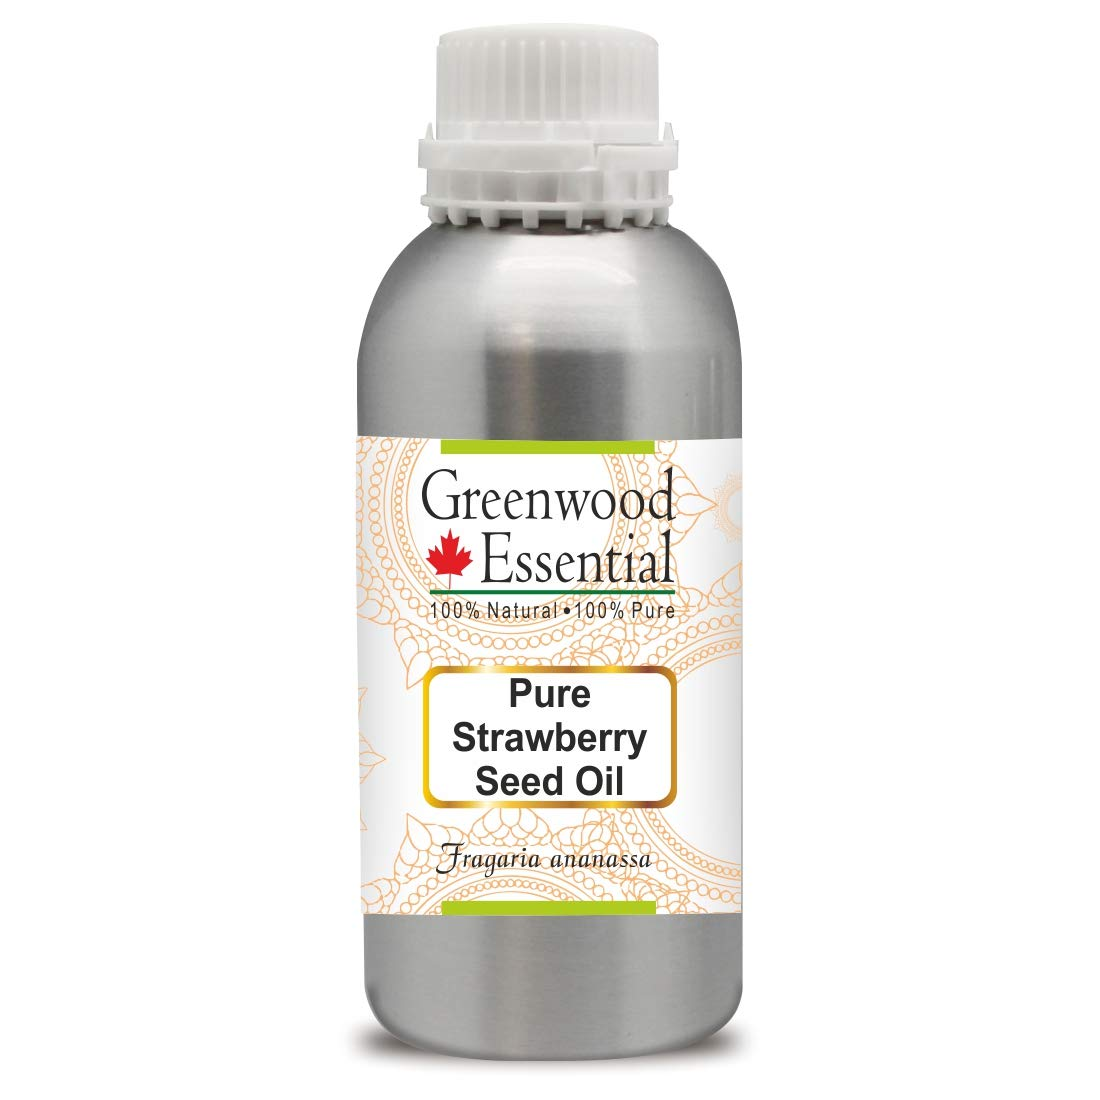 Greenwood Essential Pure Strawberry Fragaria Colorado Popular shop is the lowest price challenge Springs Mall Oil Seed ananassa